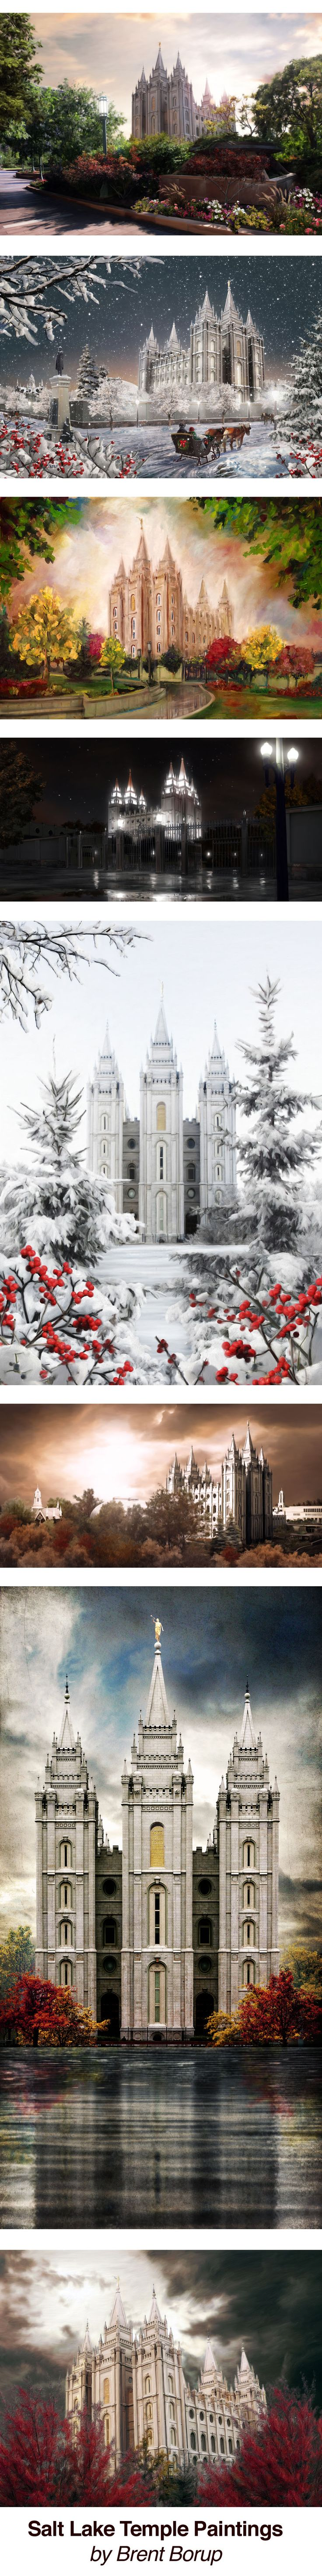 Salt Lake Temple paintings by Brent Borup. wow. wish I got artistic genes. I am related to this guy.